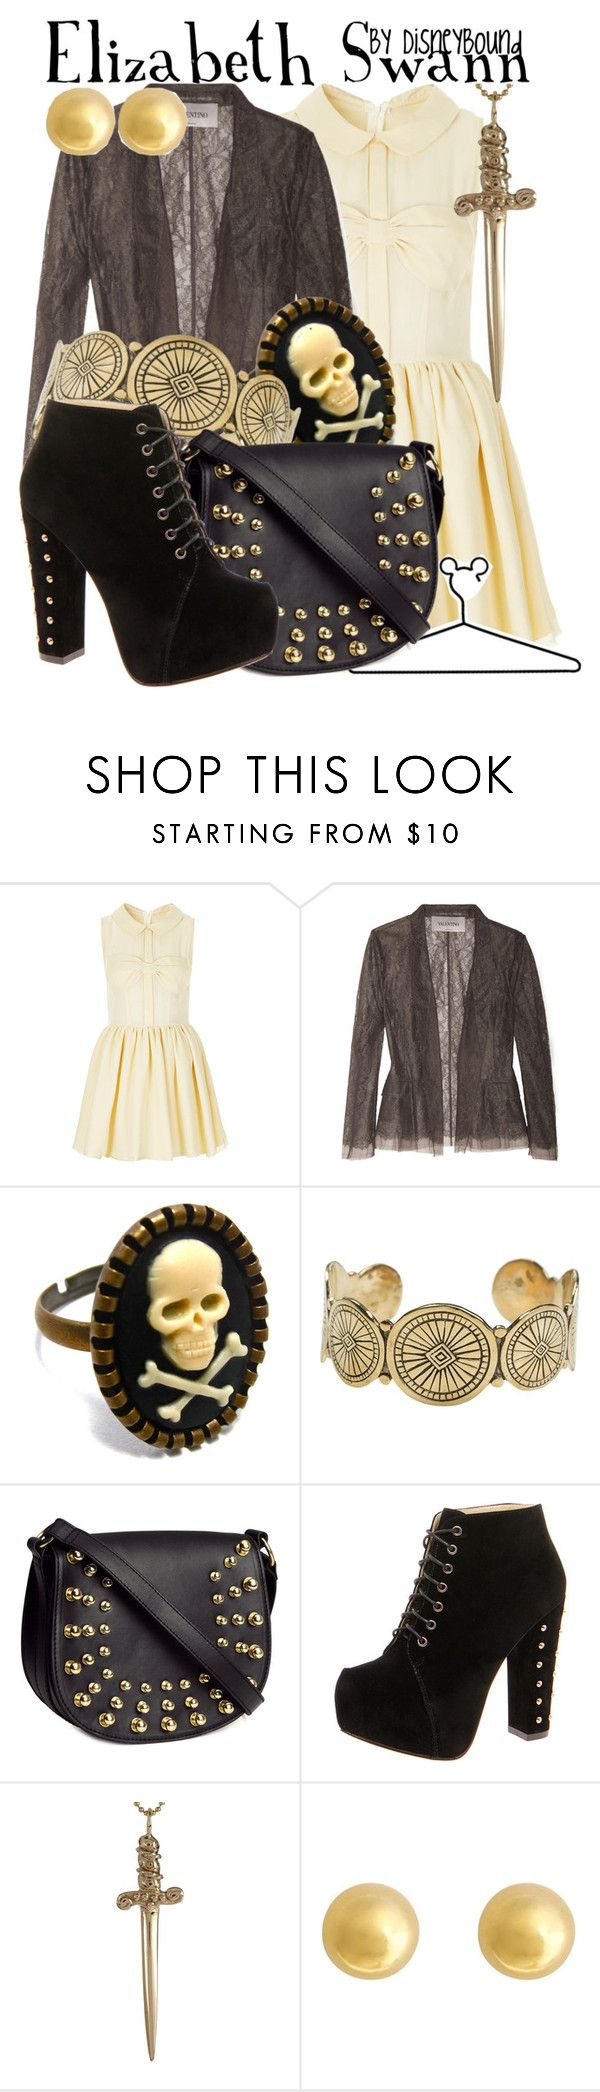 """Elizabeth Swann"" by leslieakay ❤ liked on Polyvore featuring Topshop, Valentino, Jens Pirate Booty, Disney, H&M, Boohoo, Jennifer Fisher and J by Jasper Conran"